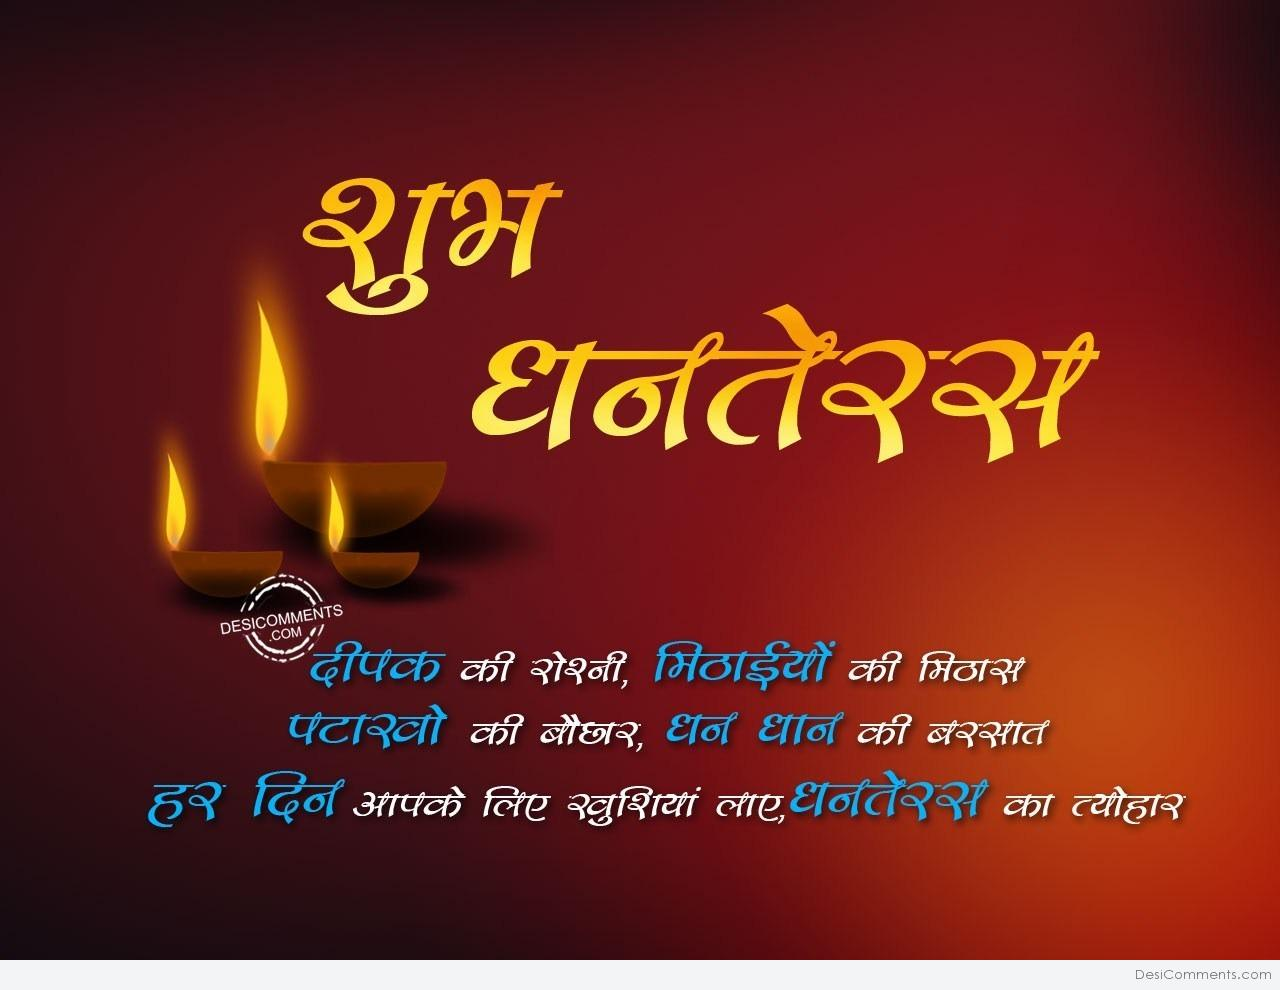 Best Dhanteras Photo Gallery for Free Download